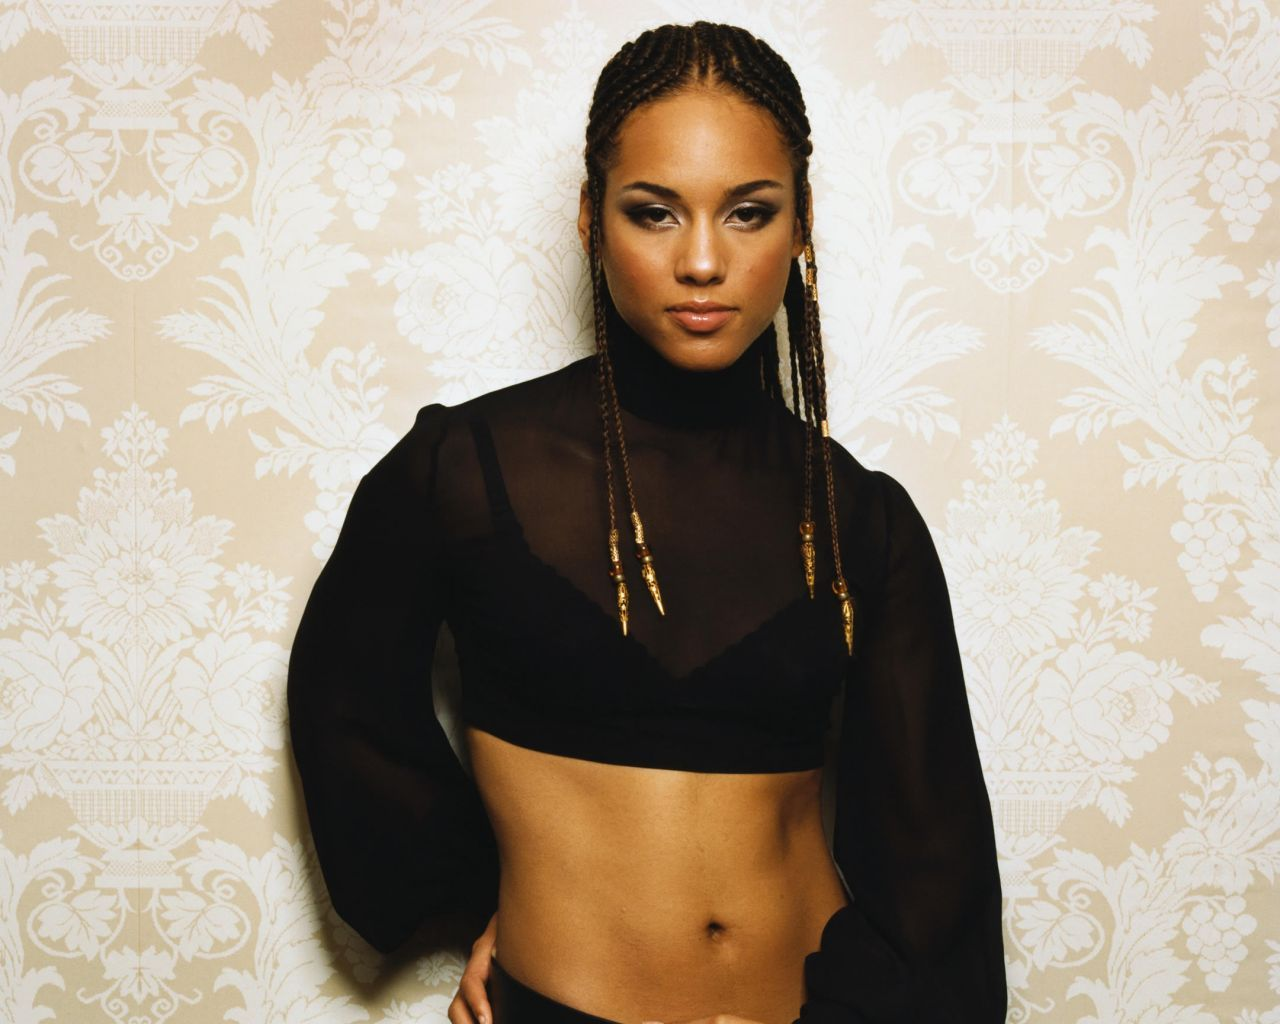 Alicia_keys_hot_wallpaper+(6)jpg